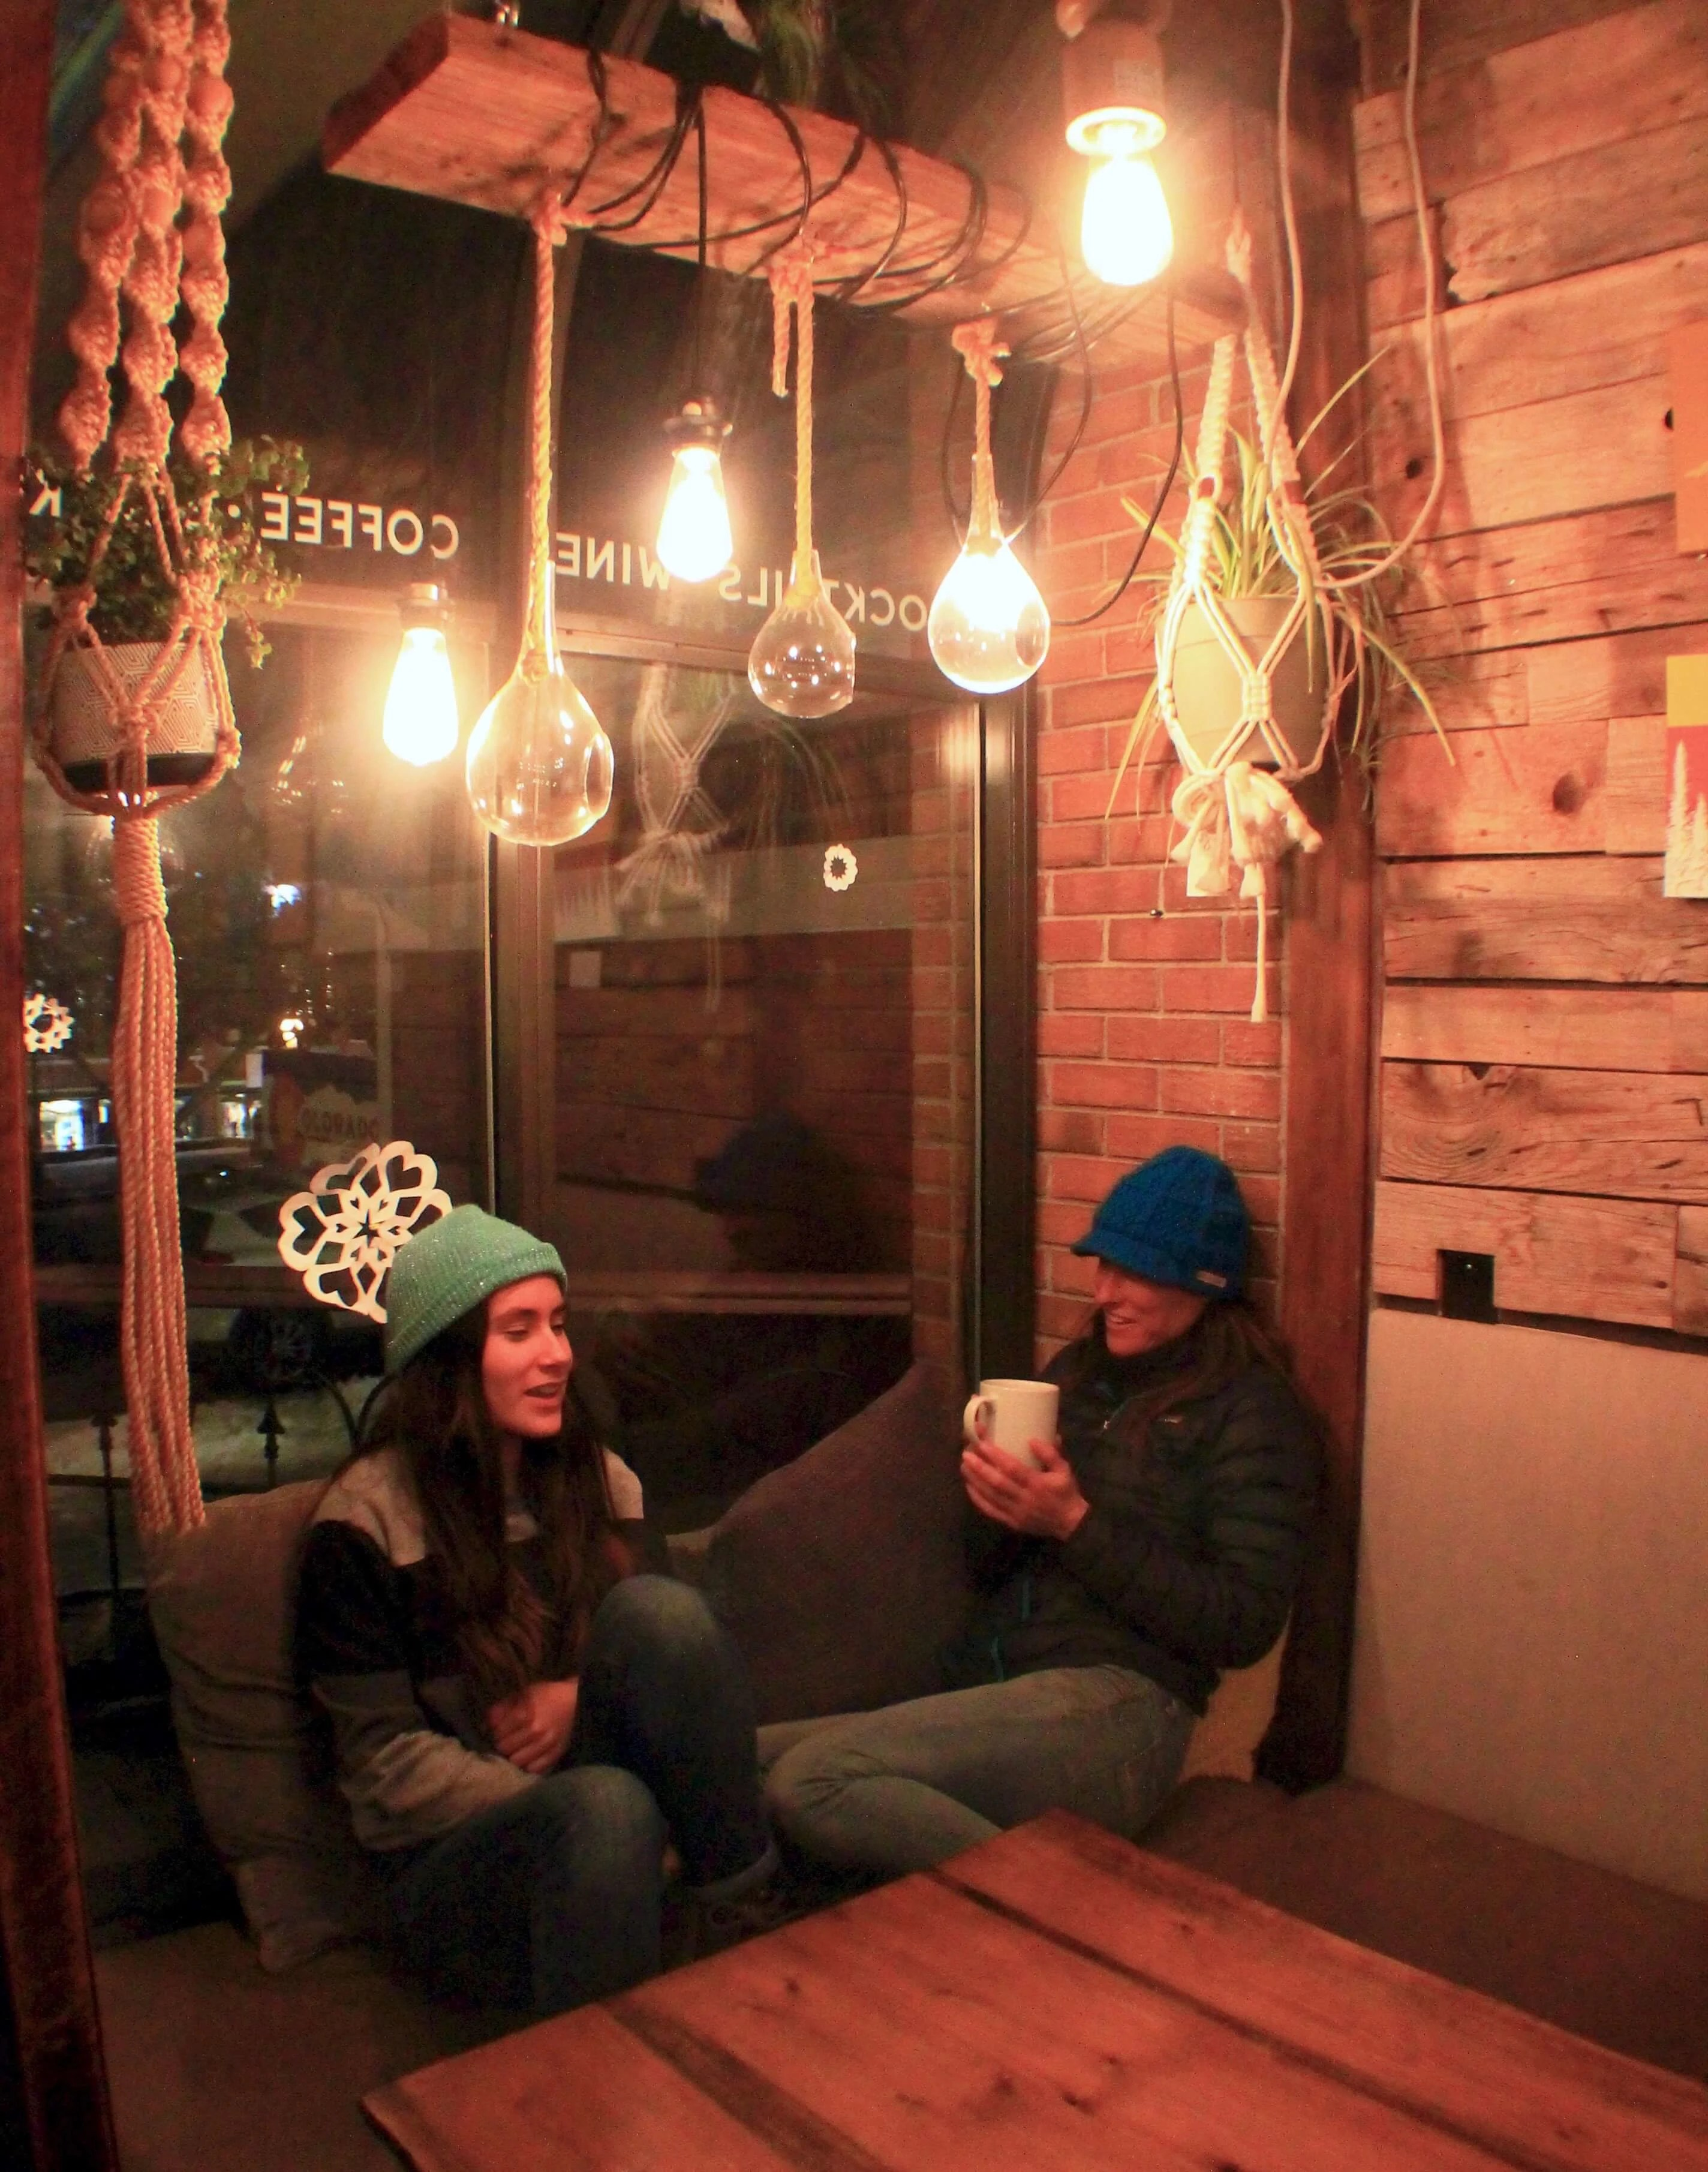 The Crown, Things to do in Summit County in Winter